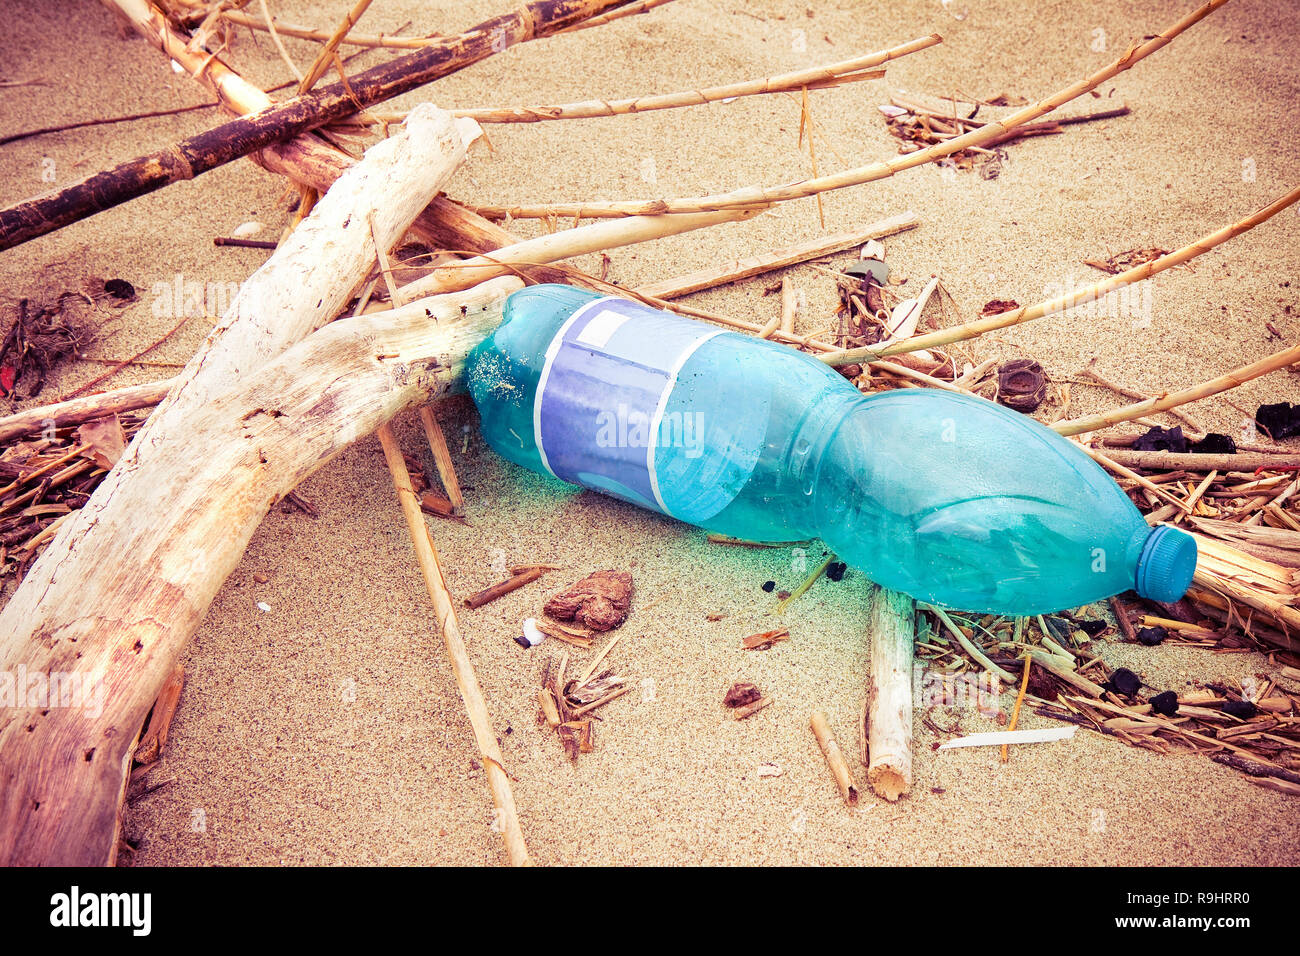 Empty green plastic bottle abandoned on the beach - plastic waste problem - Stock Image